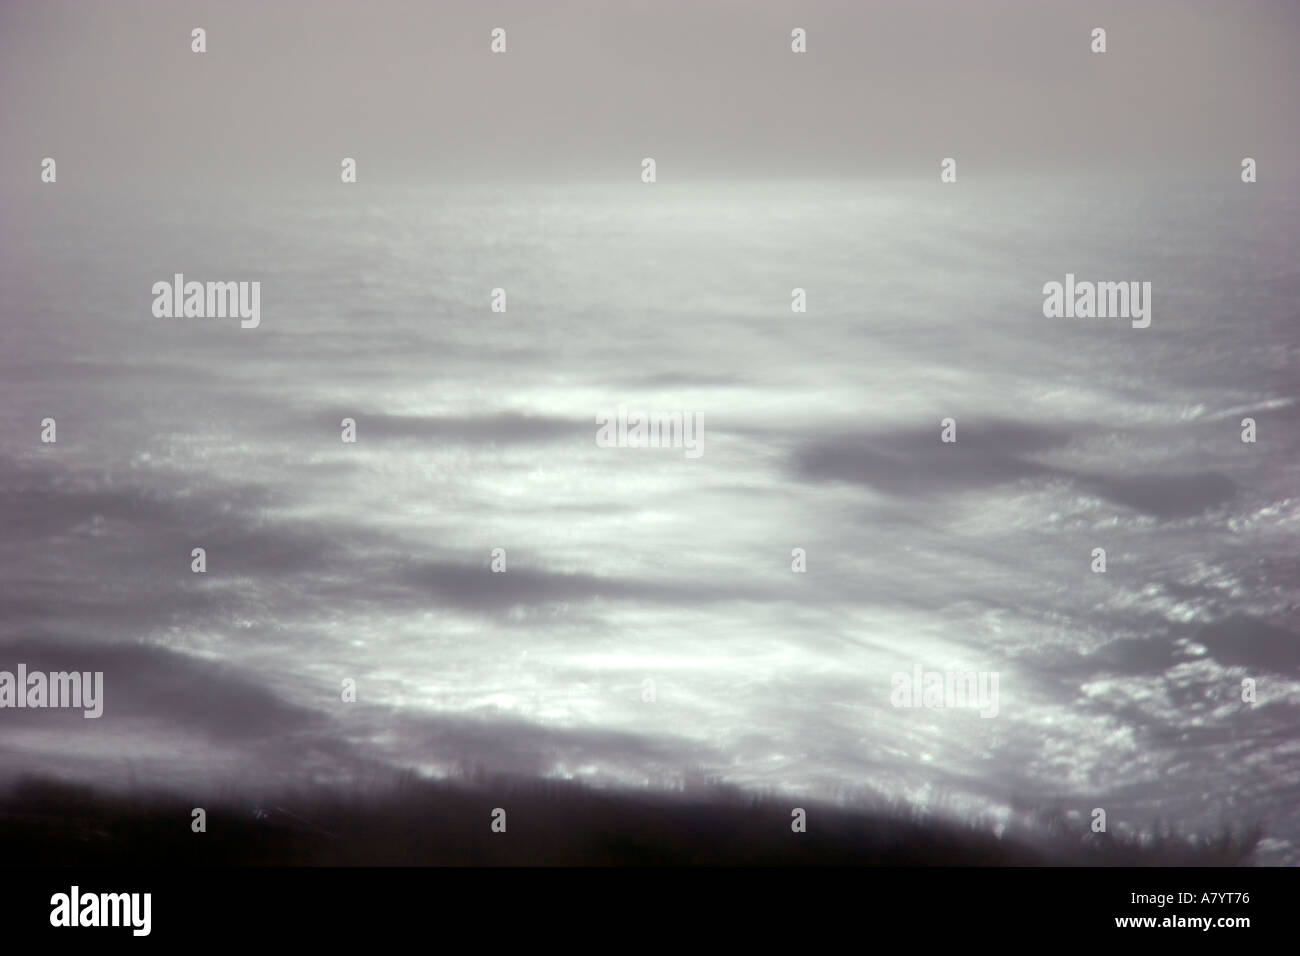 Blurred abstracted seascape - Stock Image